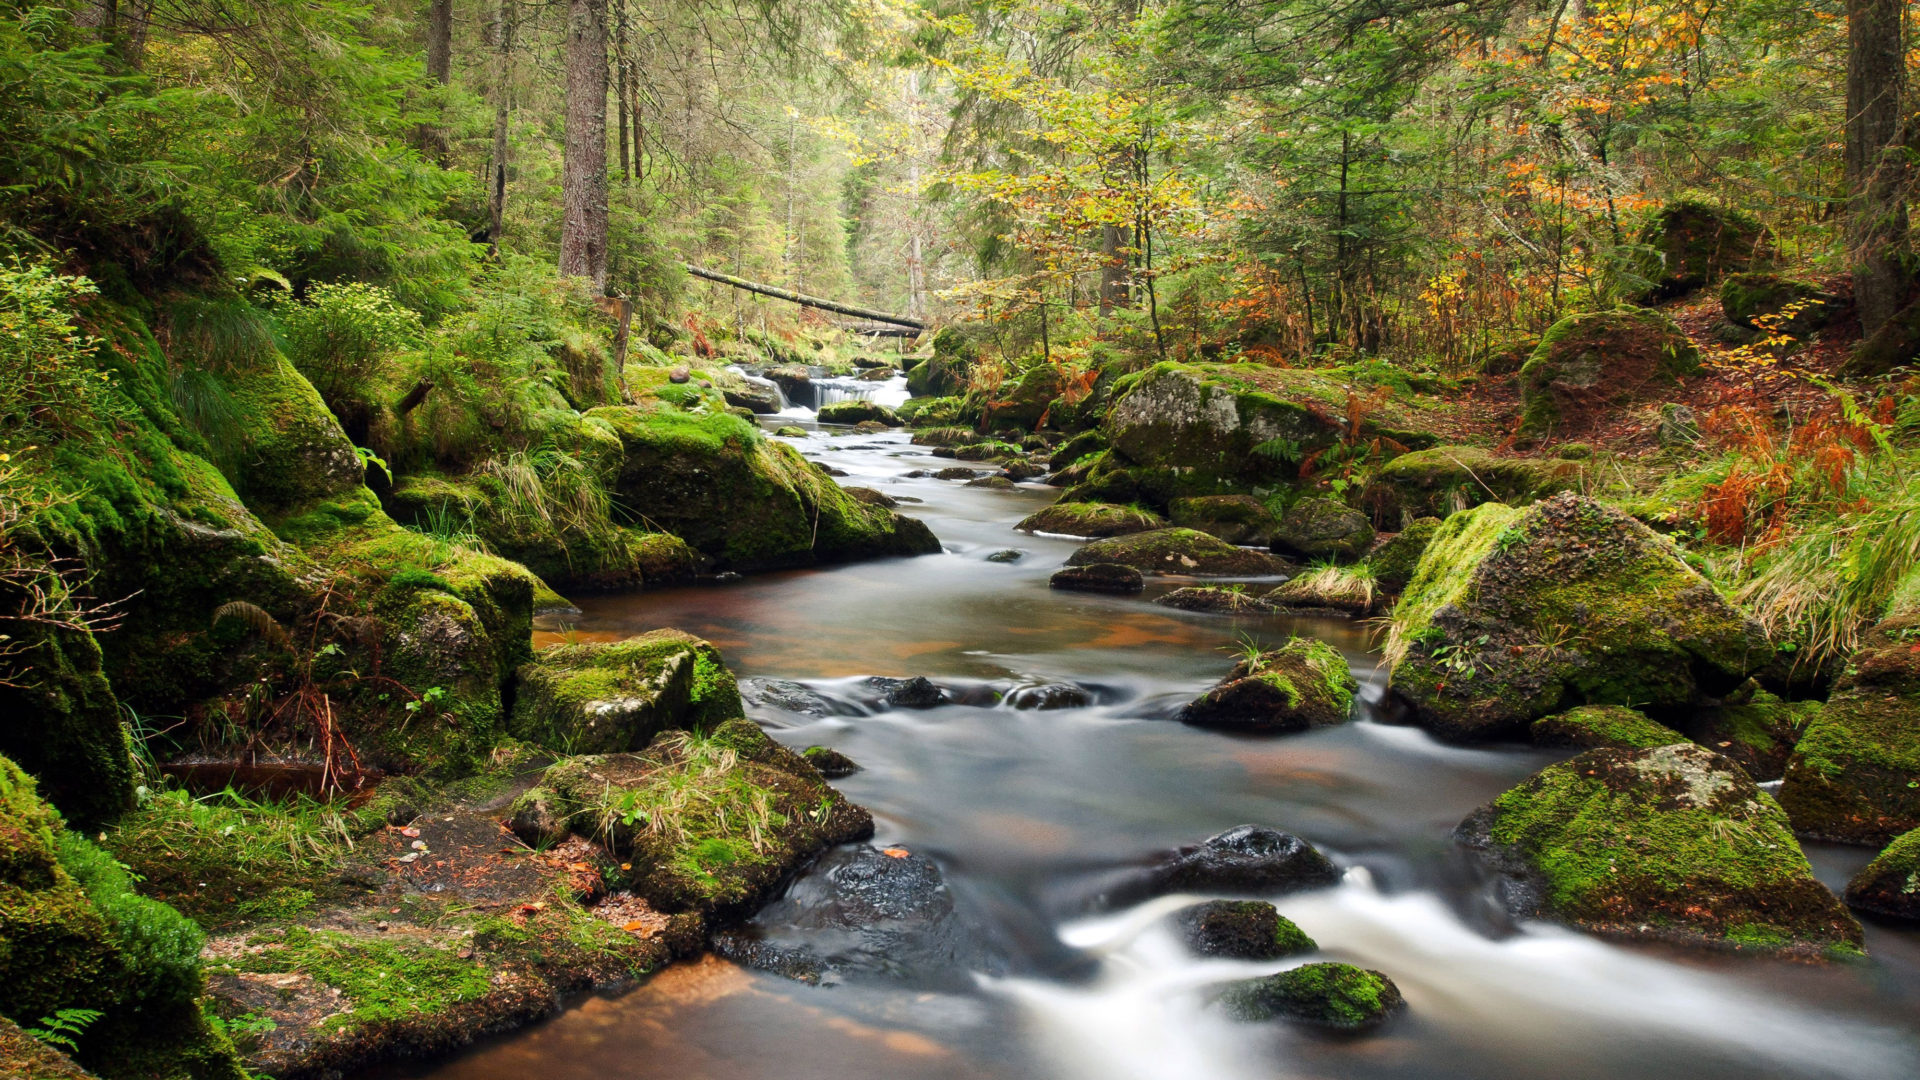 Kentucky Fall Wallpaper Mountain River Bank Of Rocks Covered With Green Moss Pine